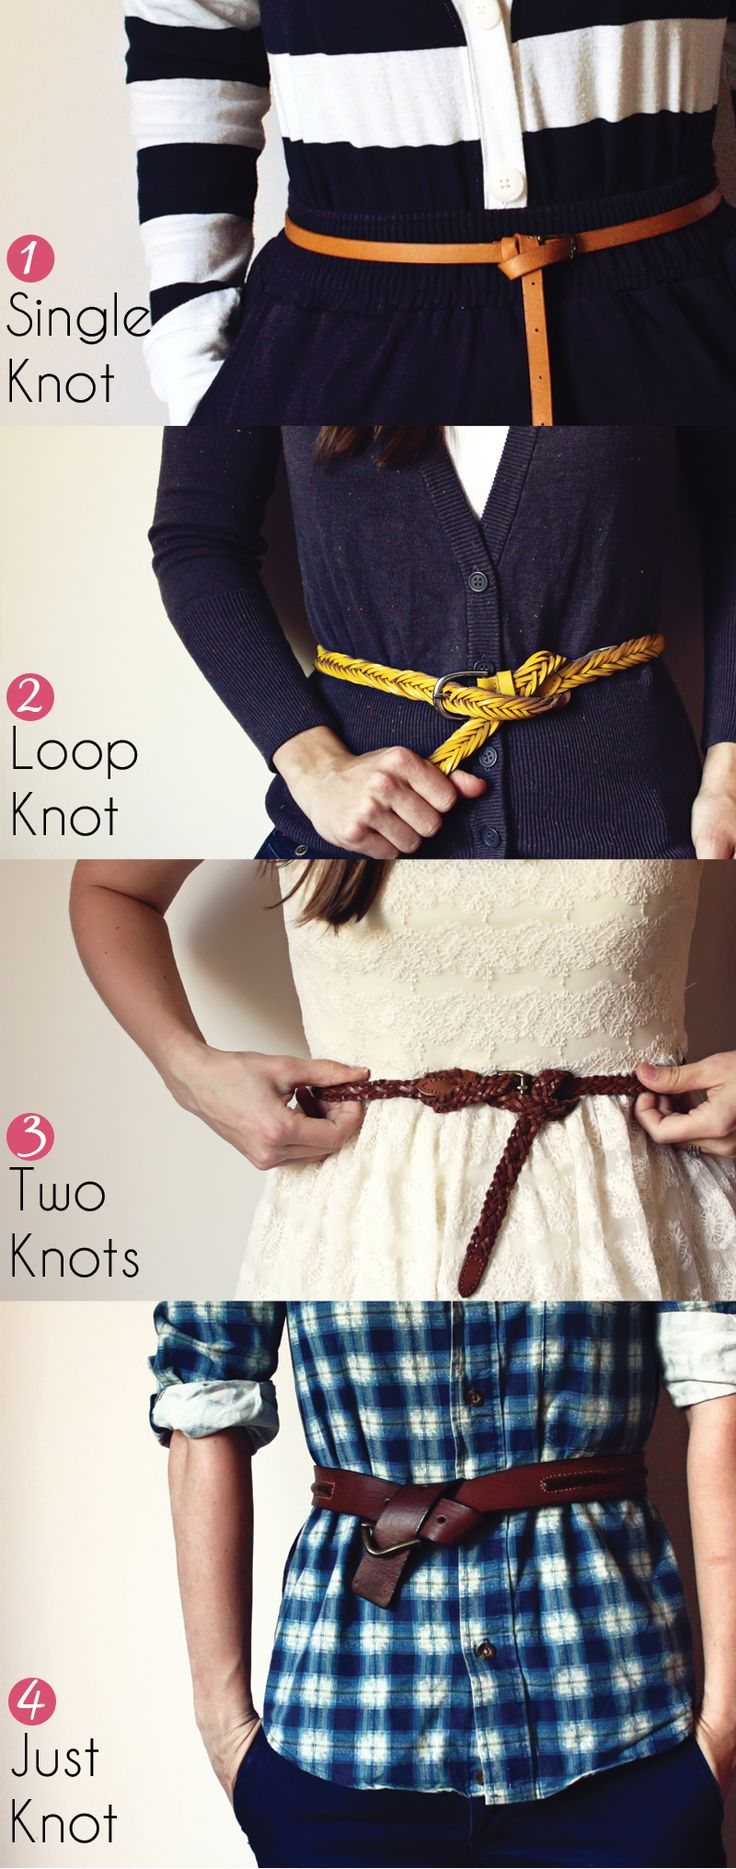 4 ways to knot